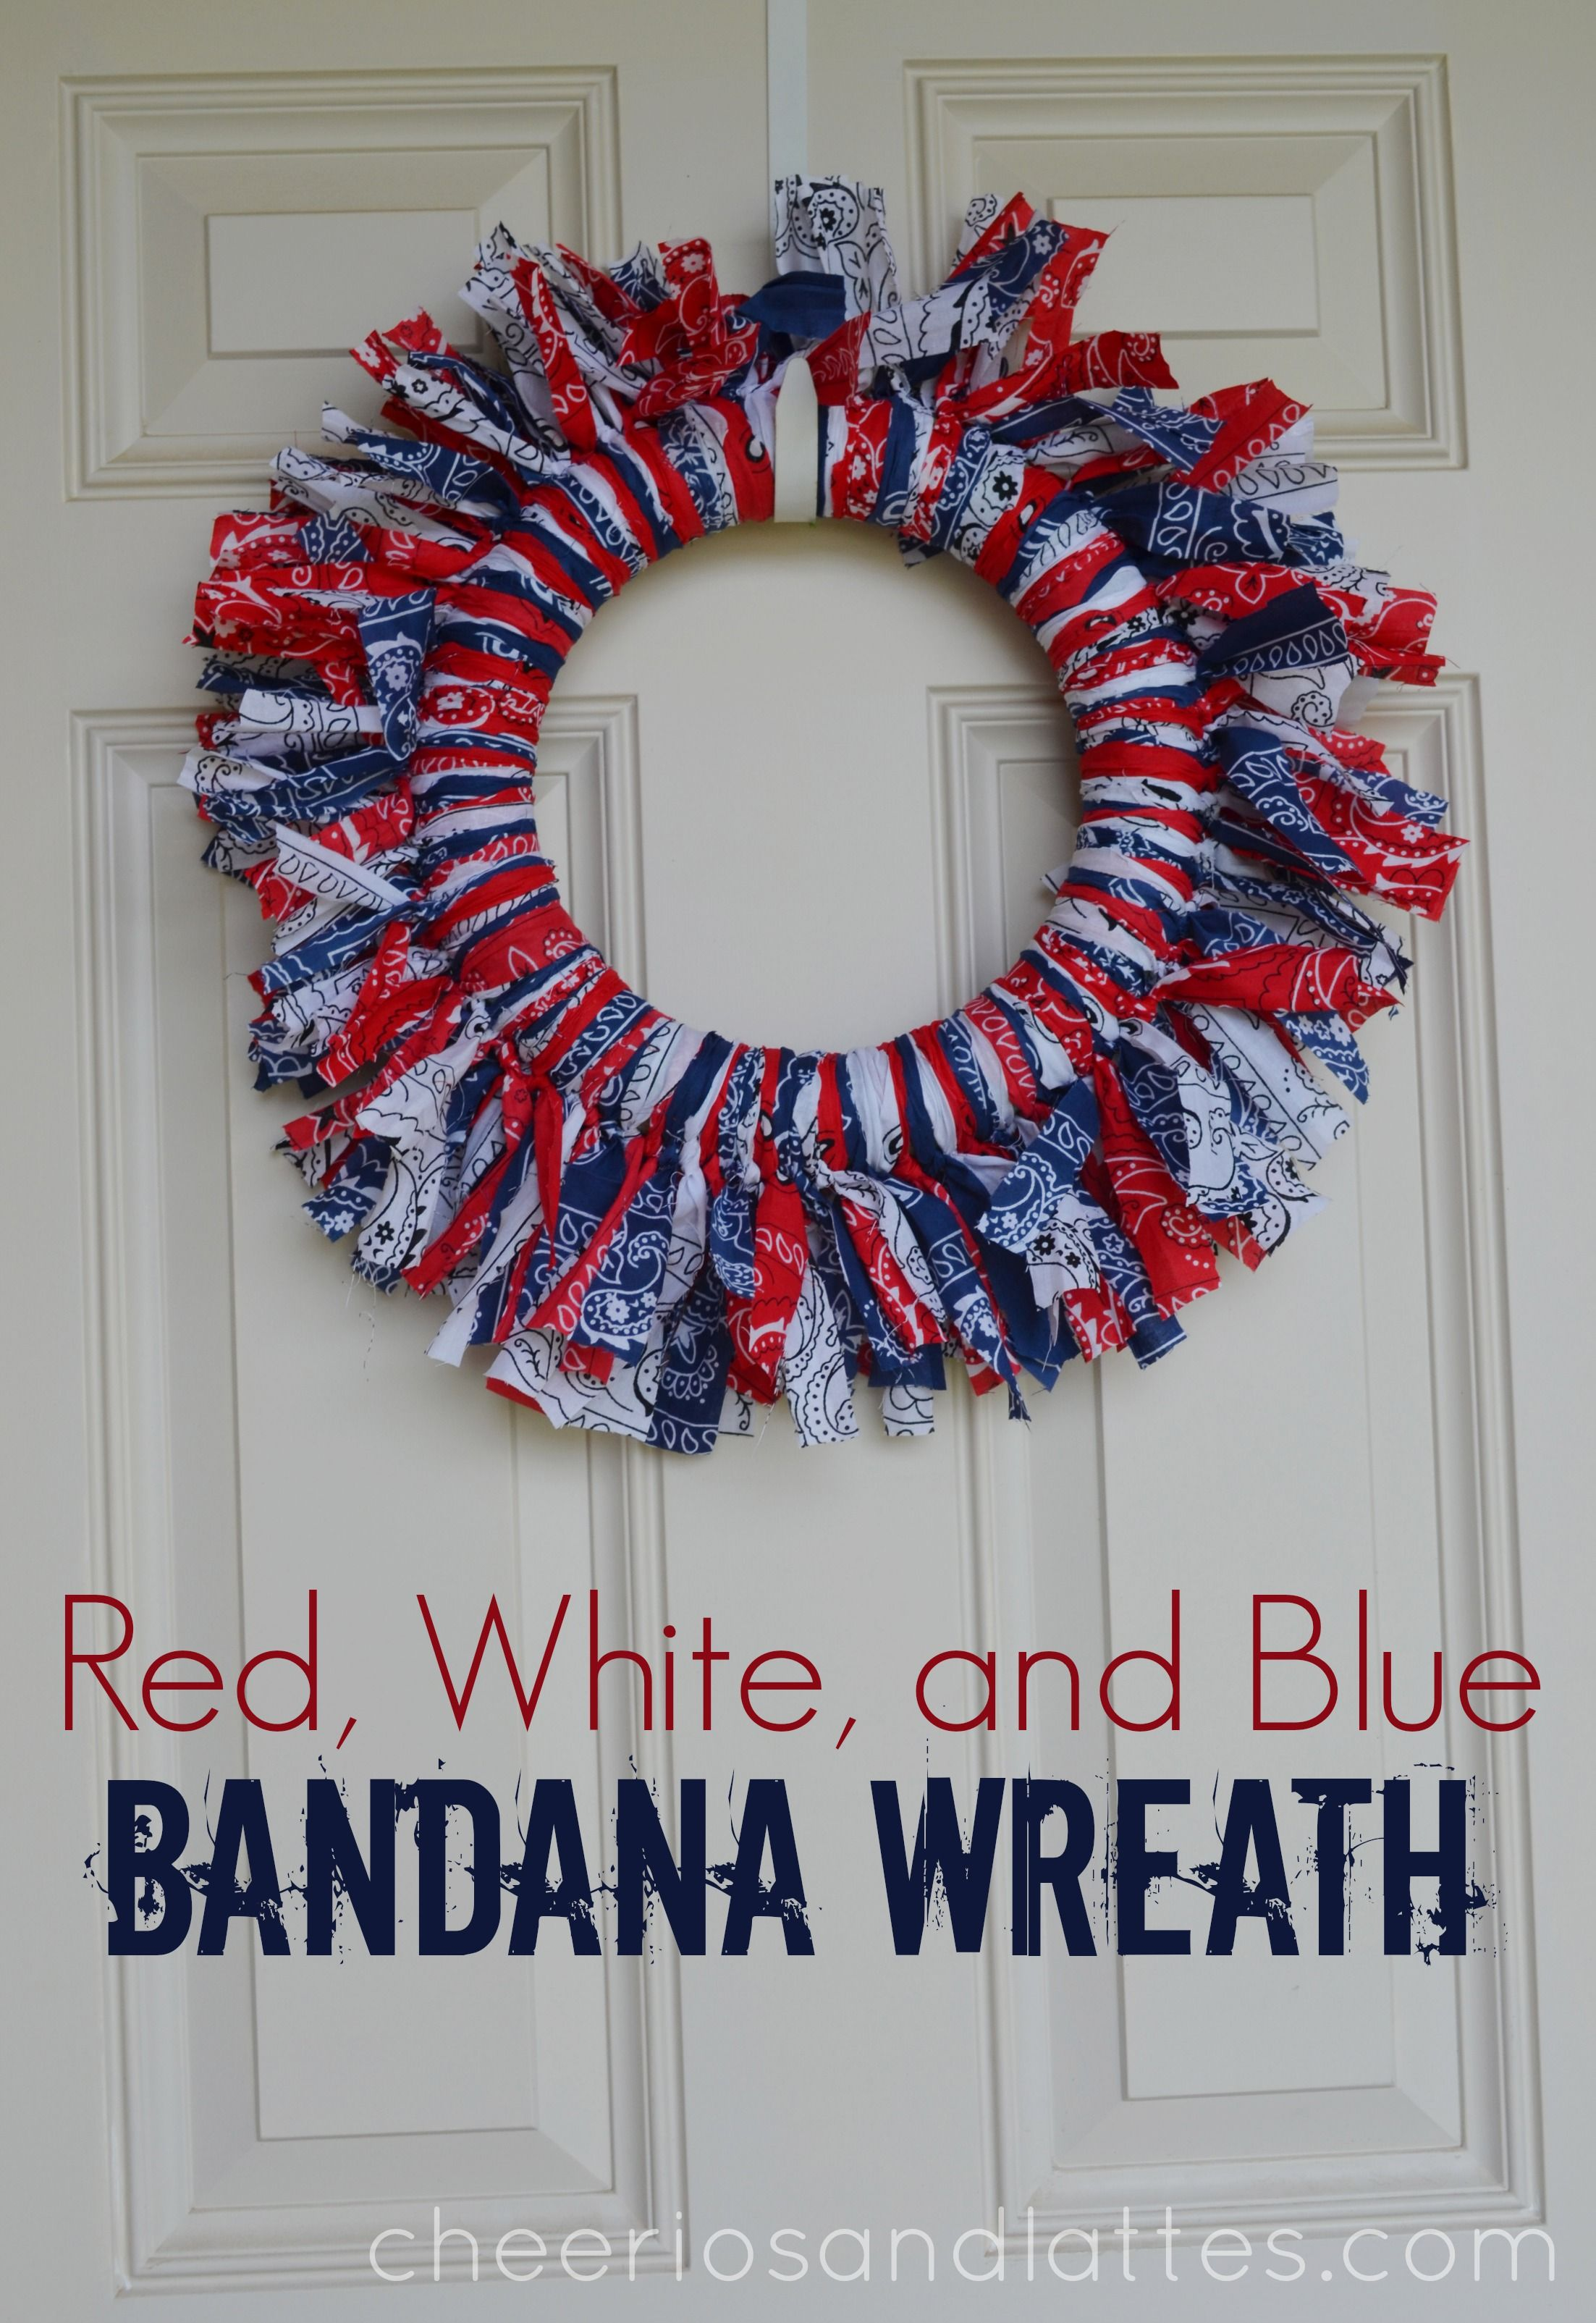 Red White and Blue Bandana Wreath wreath diy homedecor fourthofjuly memorialdayjpg 22053209 Red White and Blue Bandana Wreath wreath diy homedecor fourthofjuly